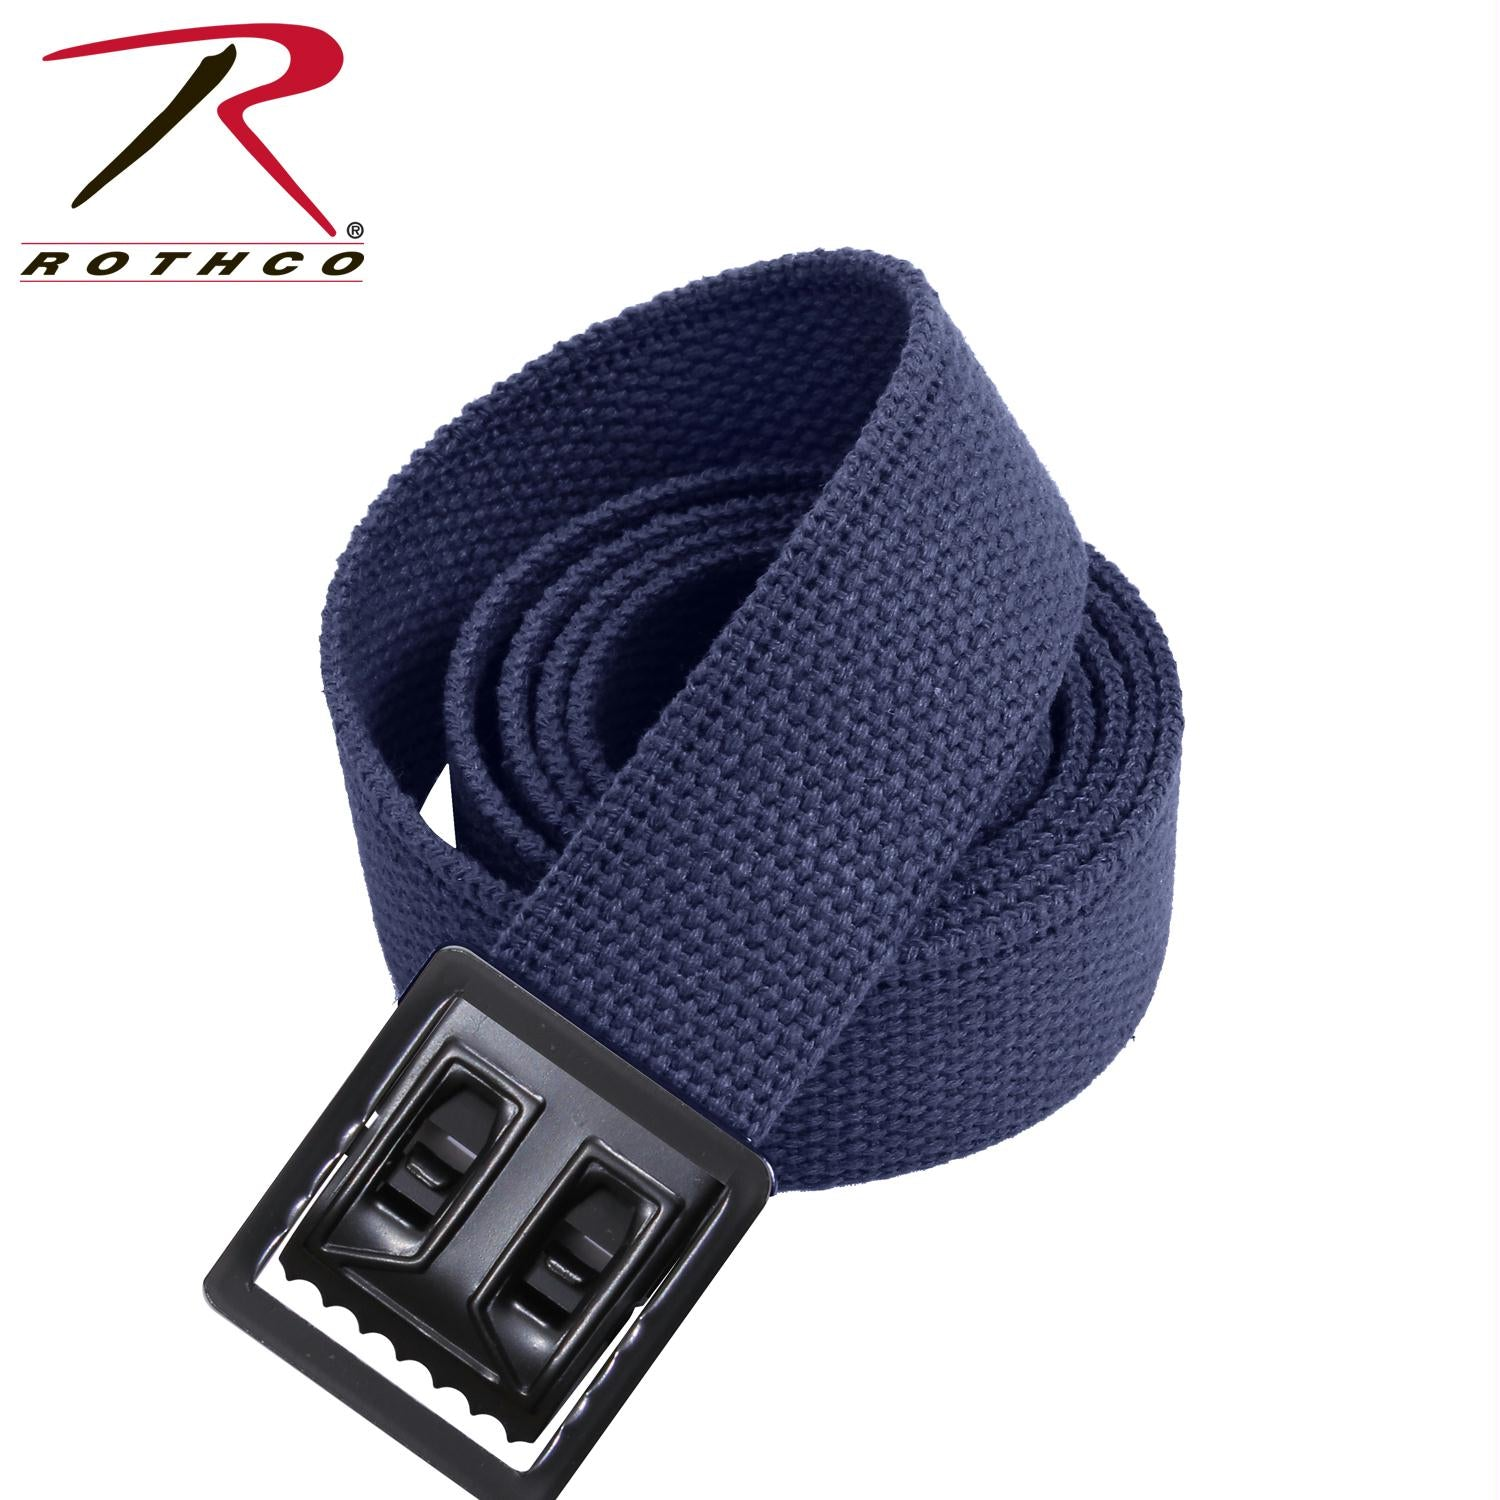 Rothco Military Web Belts w/ Open Face Buckle